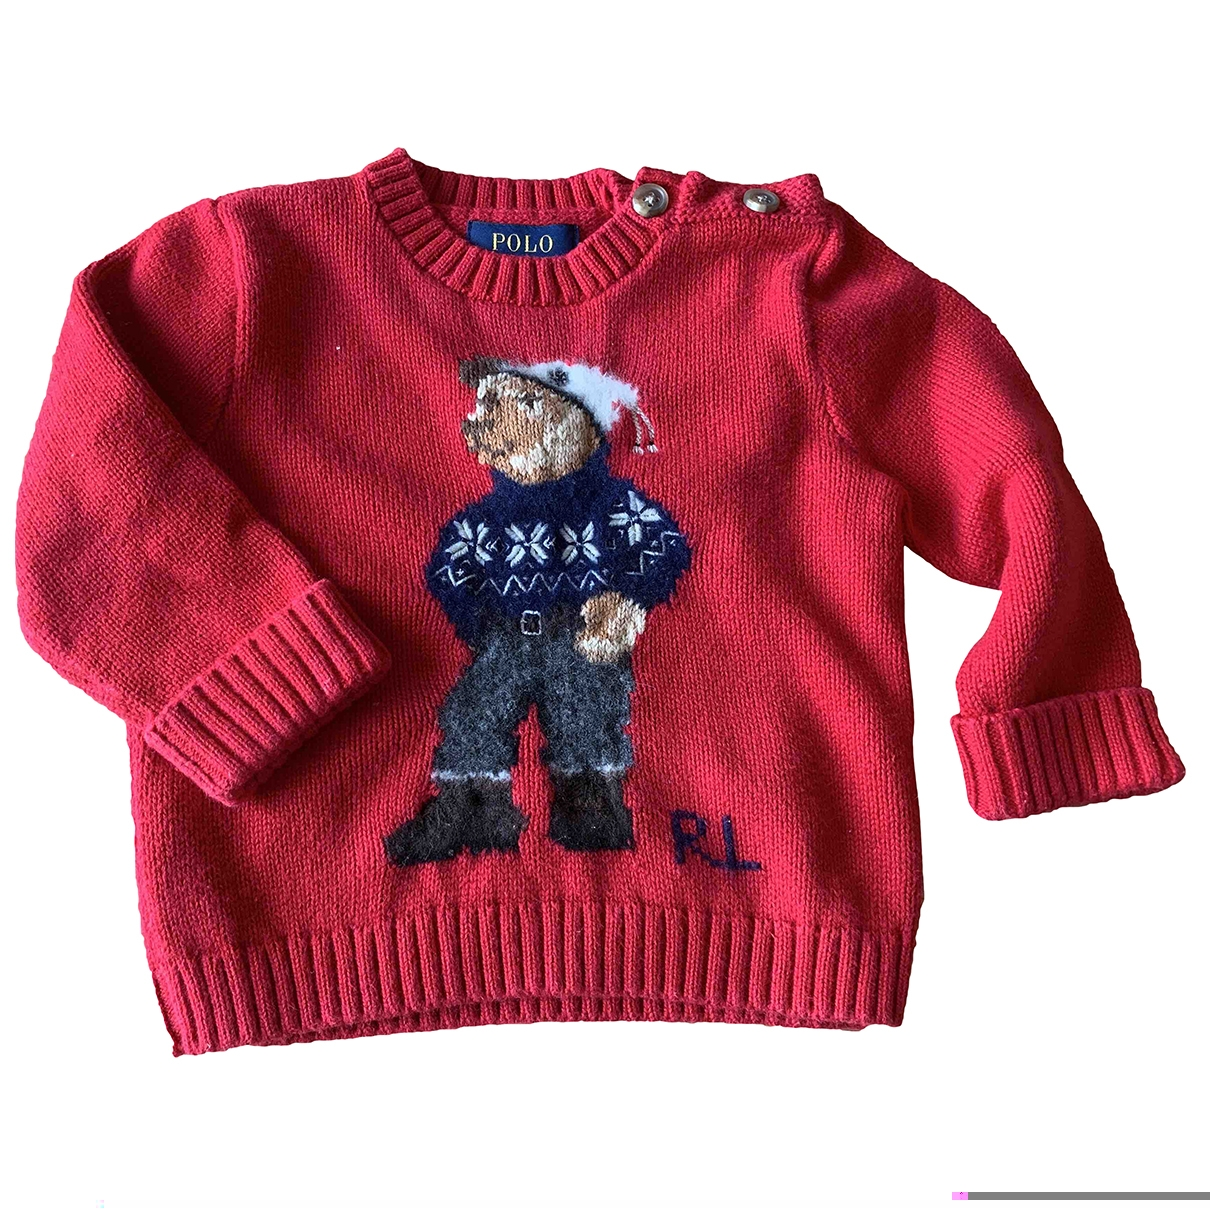 Polo Ralph Lauren \N Red Cotton Knitwear for Kids 9 months - up to 71cm FR